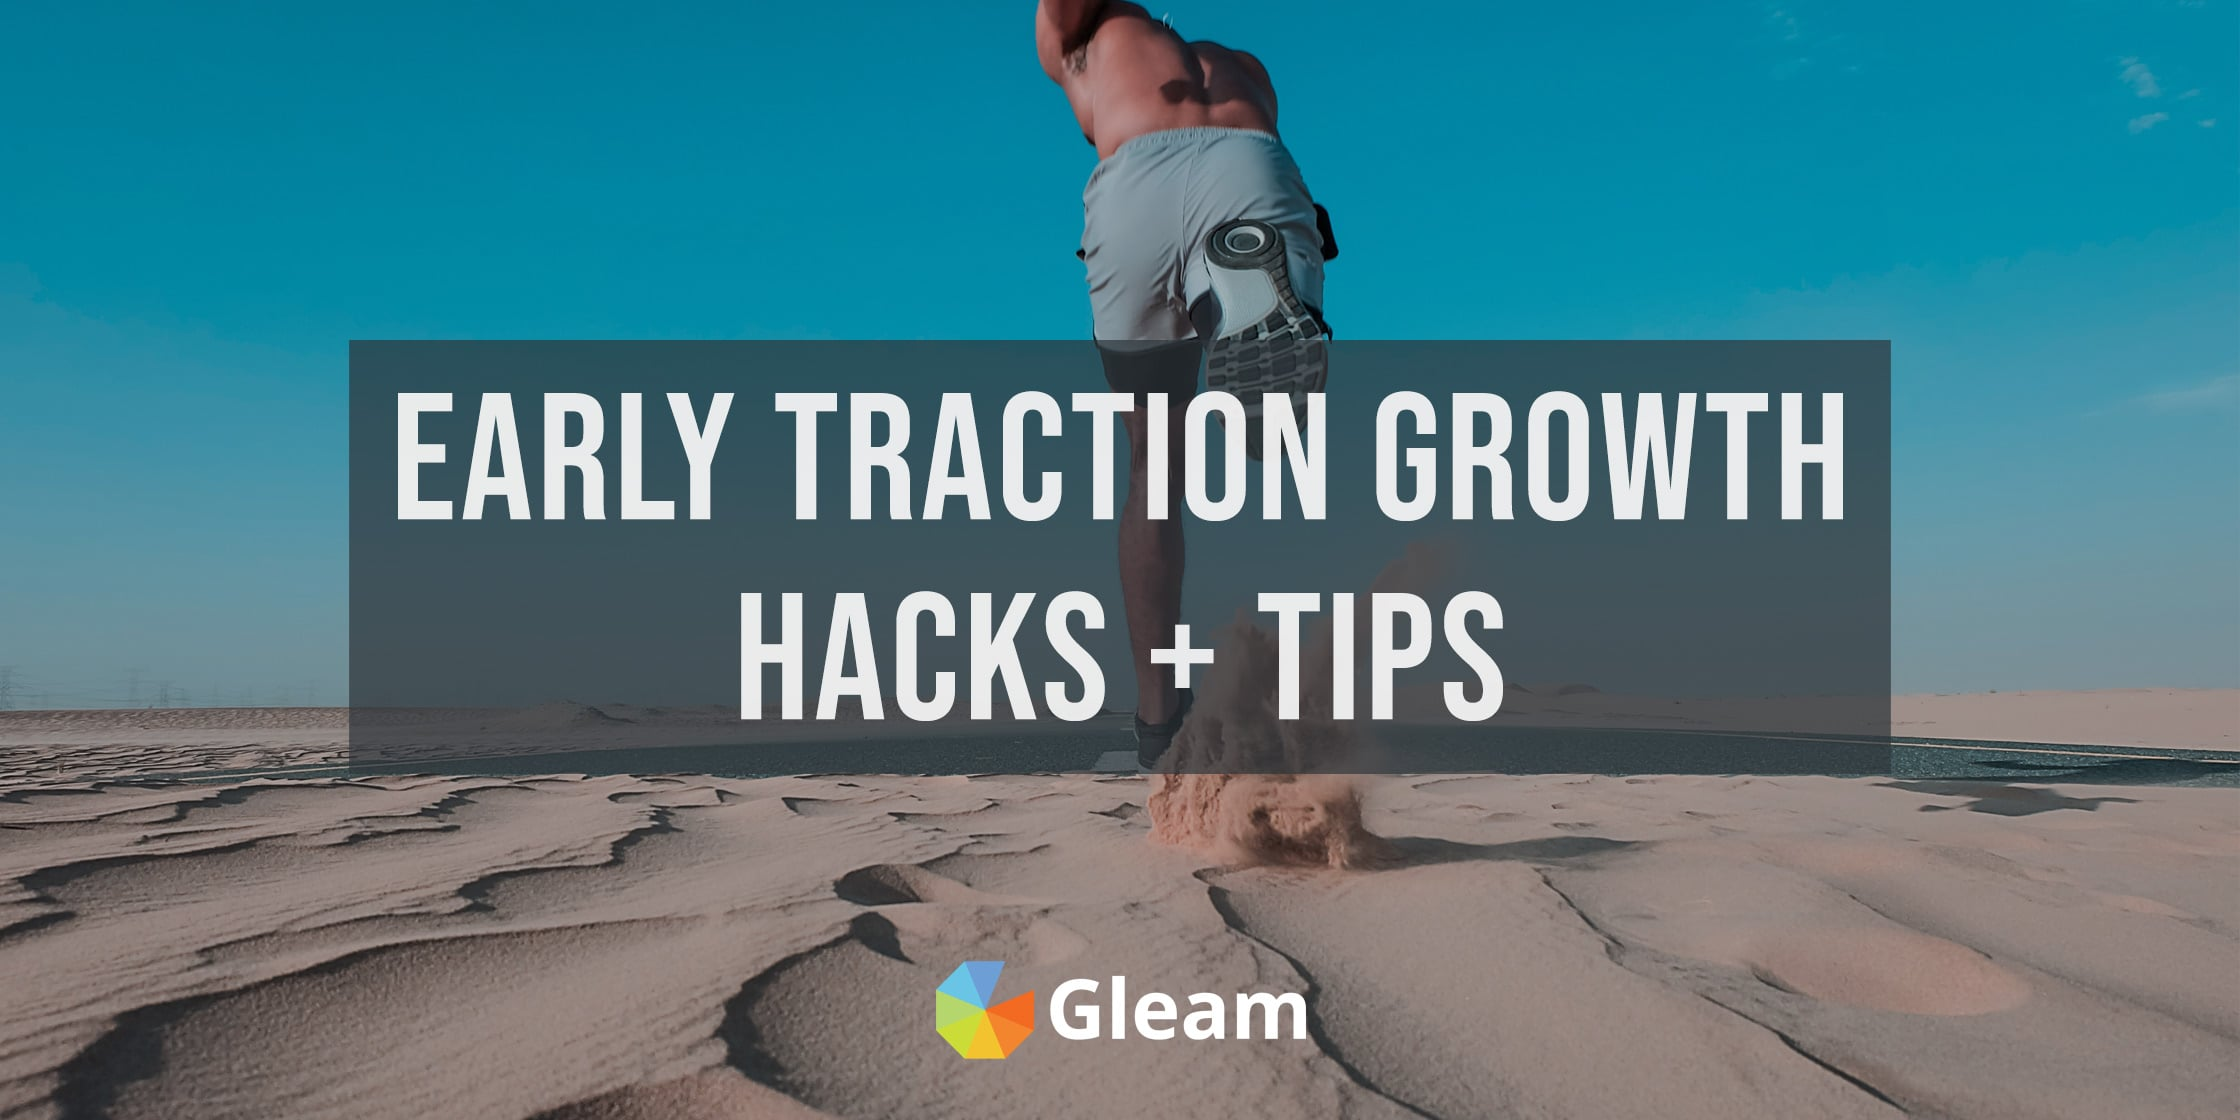 15 Early Traction Growth Hacking Strategies For Startups